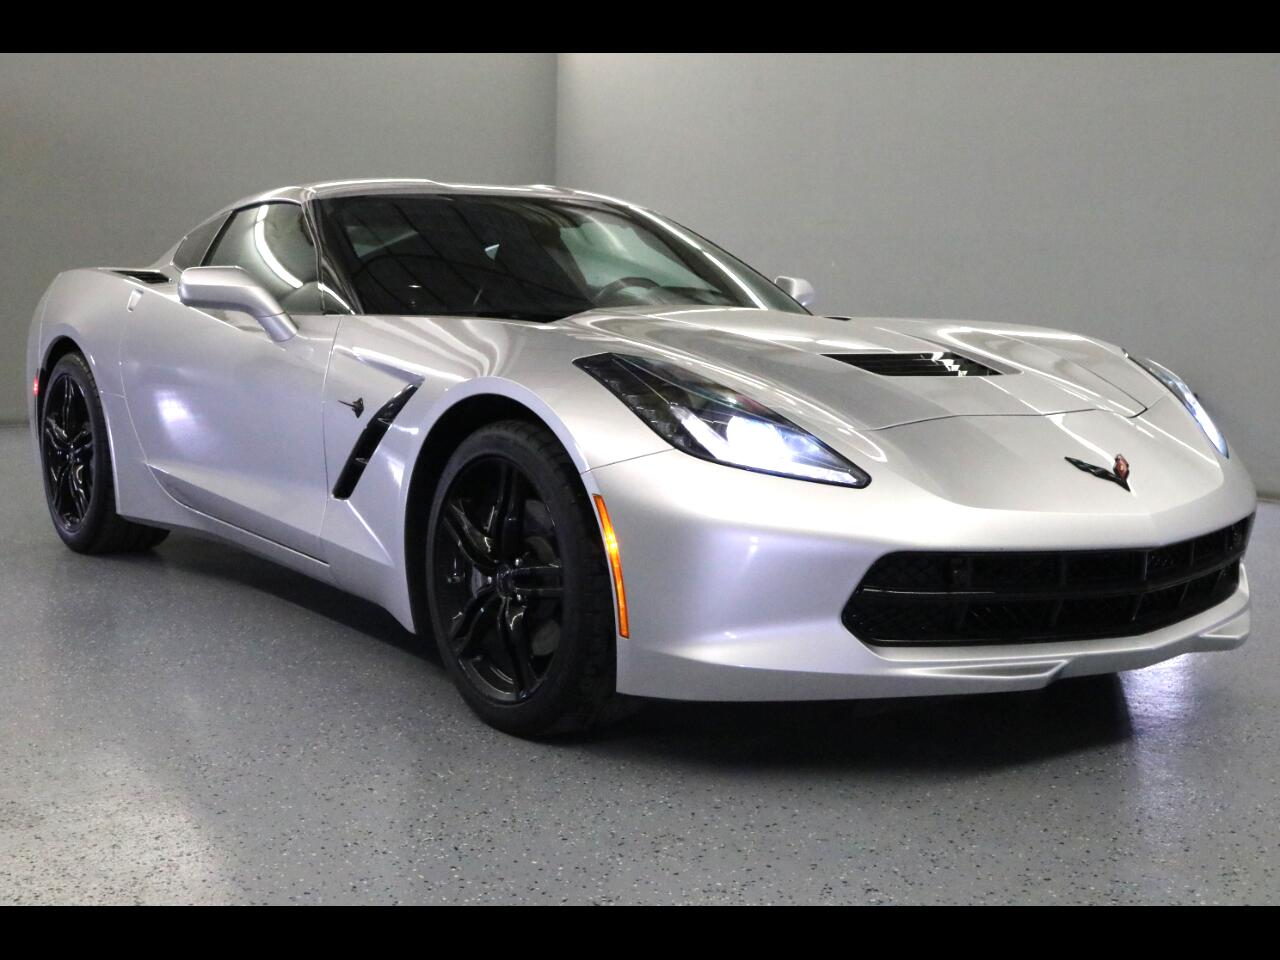 2017 Chevrolet Corvette 2dr Stingray Cpe w/3LT